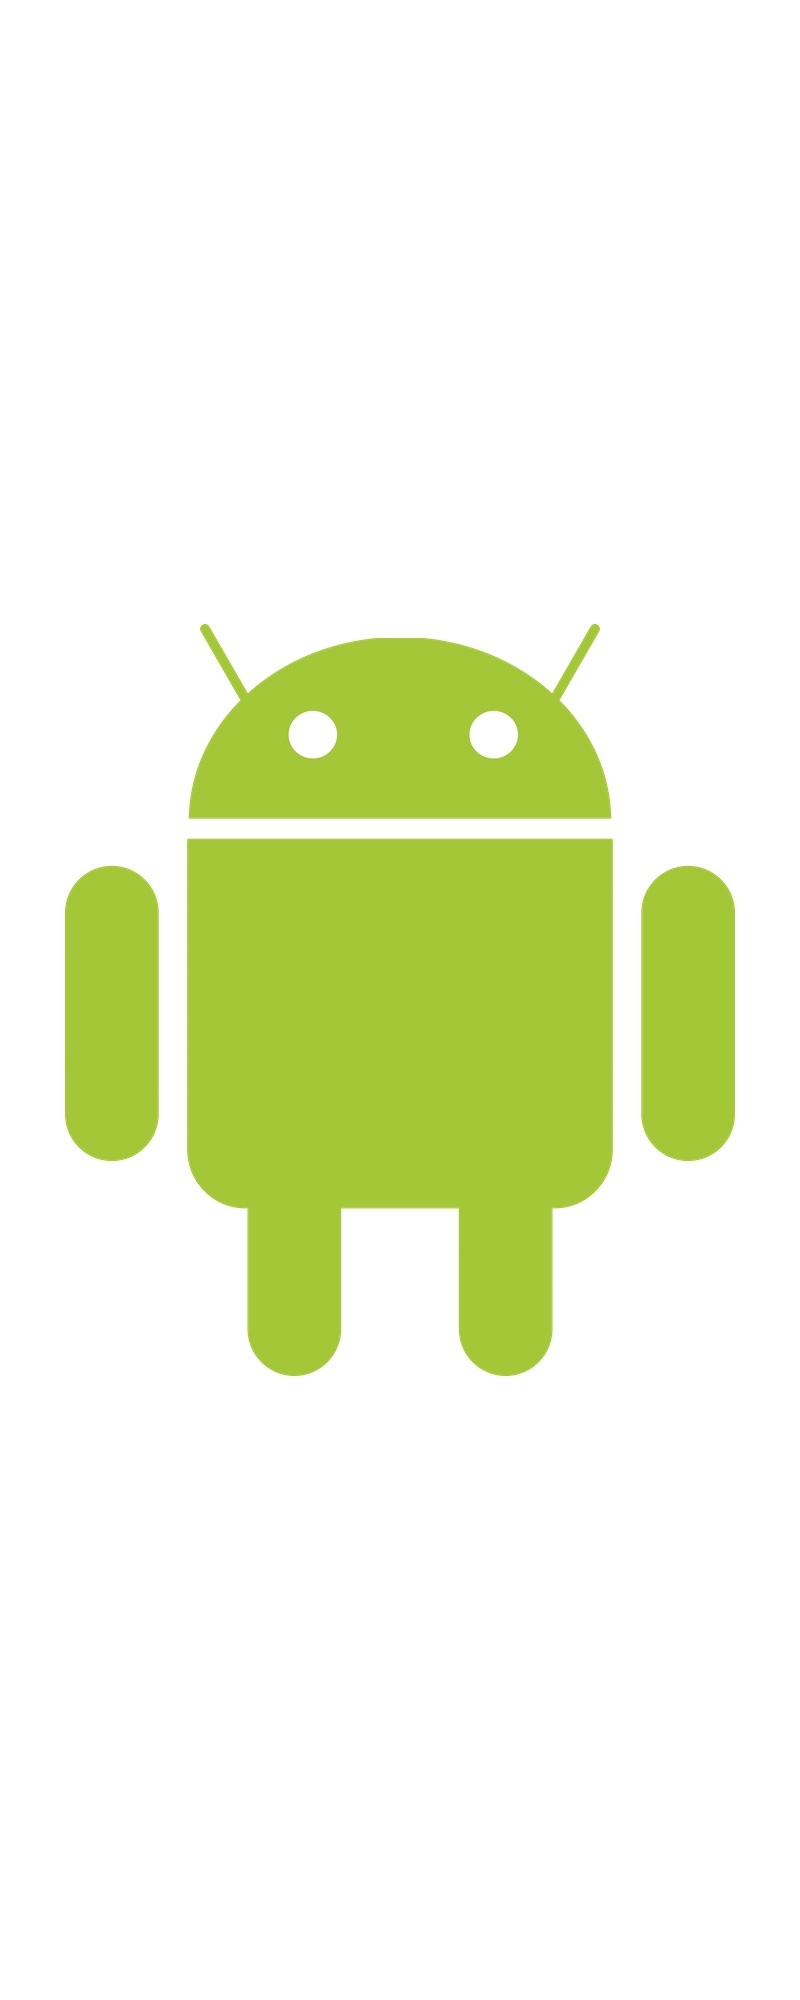 our solutions are compatible on Android